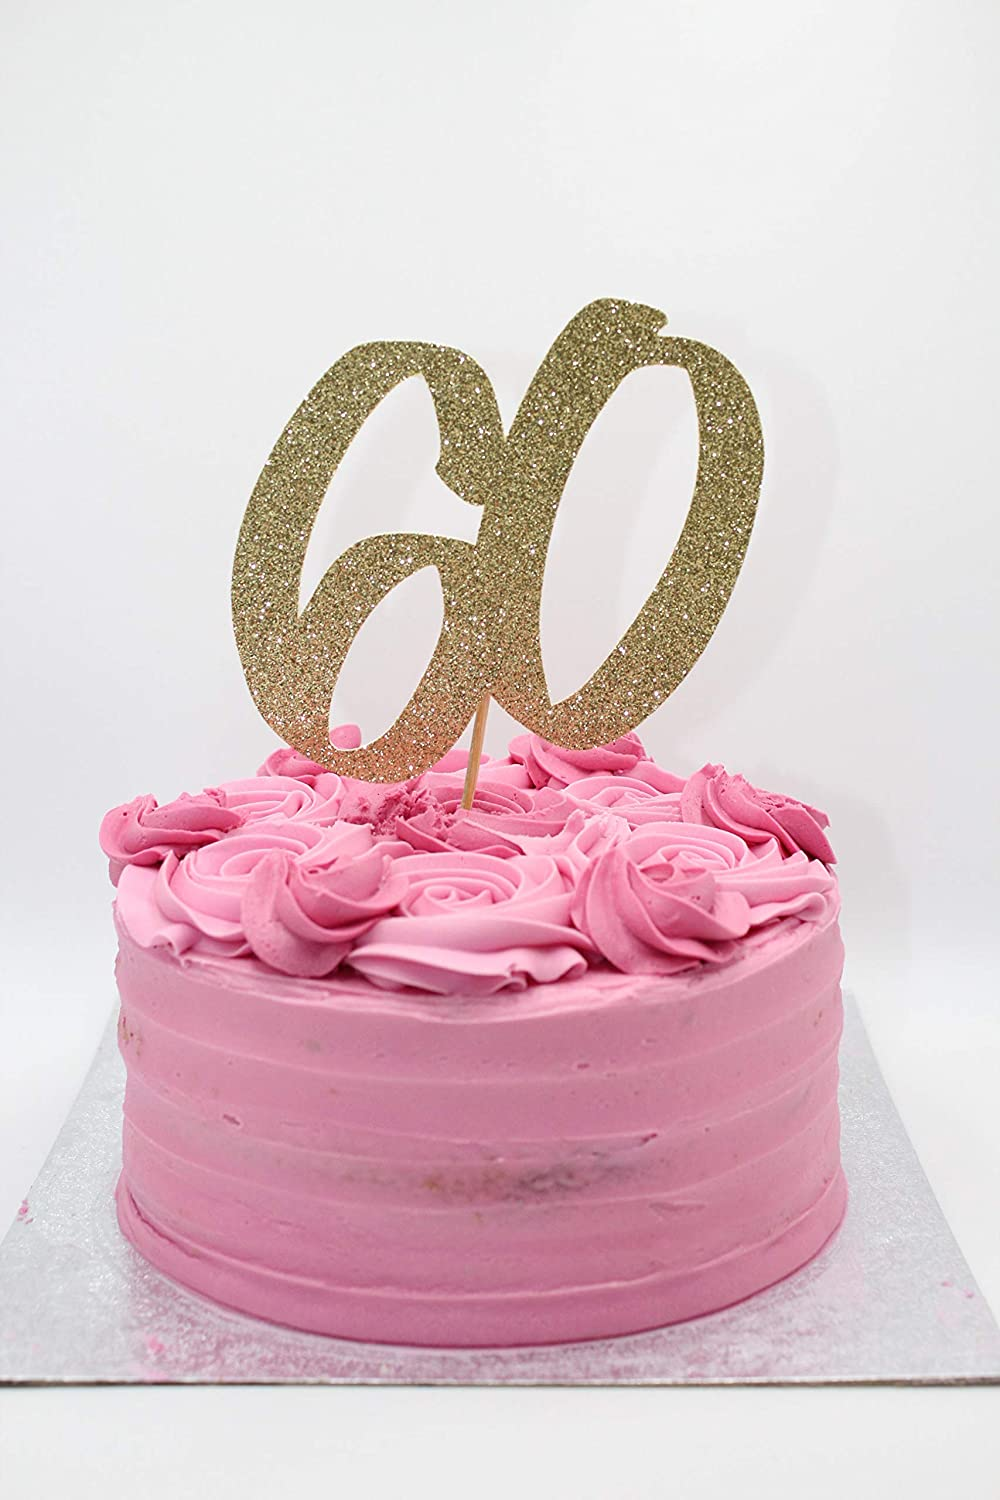 Large 60 Gold Glitter Card Cake Topper Cake Decorations